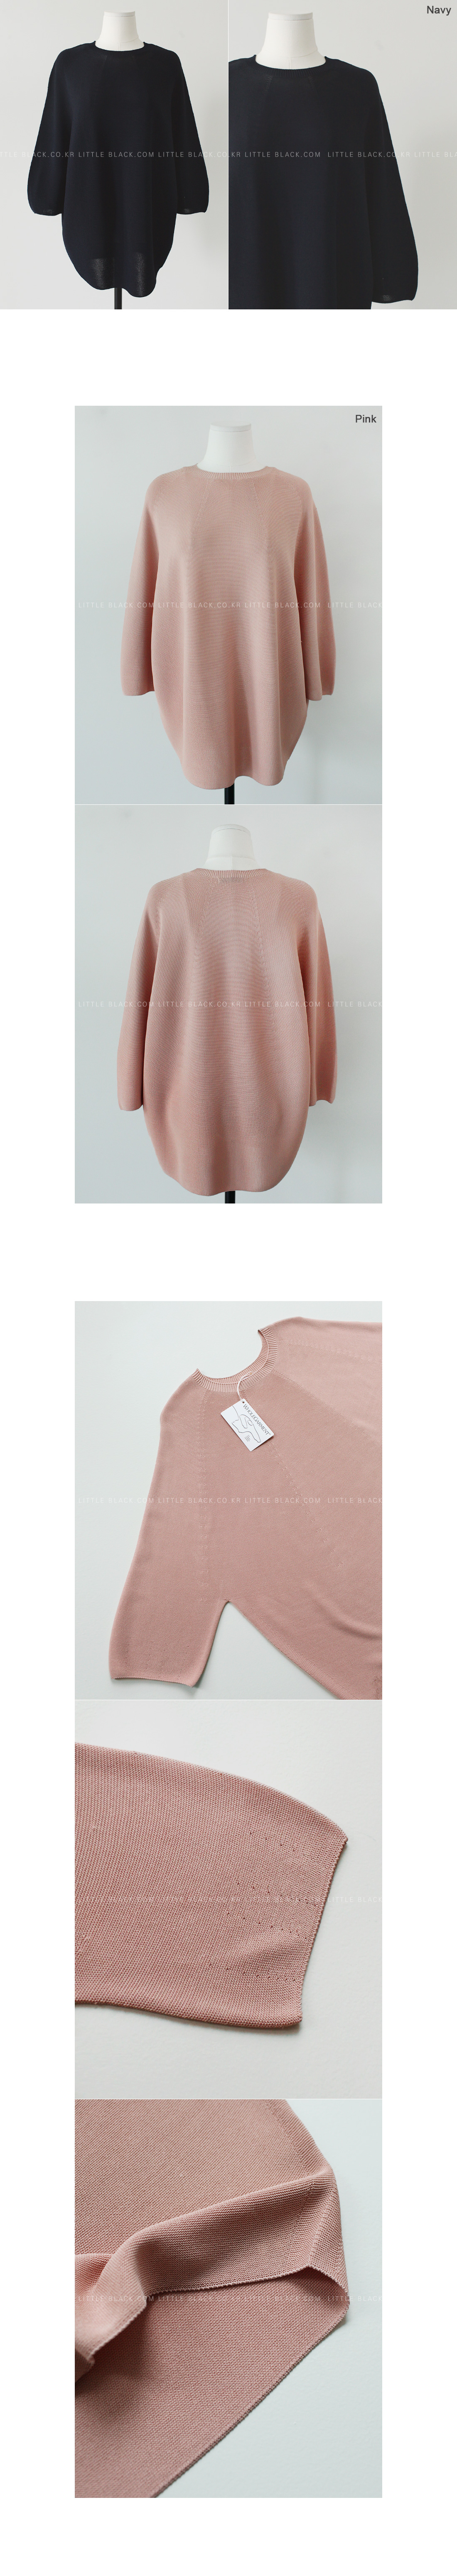 Whole Garment 3/4 Sleeve Knit Top|